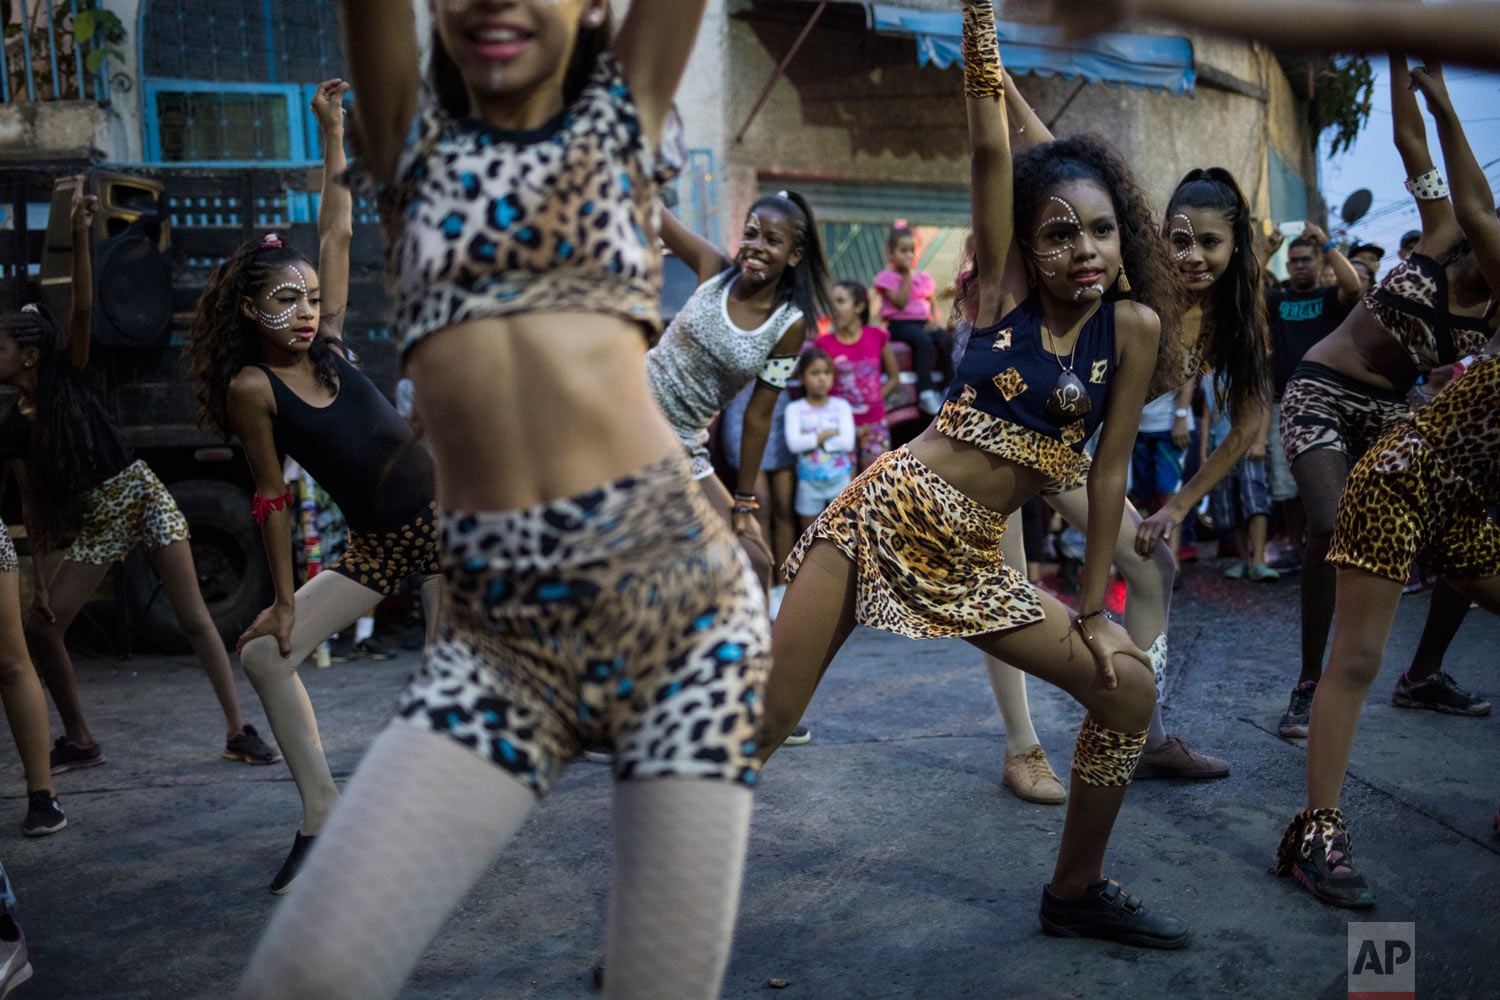 Young dancers from the Style Dance Academy perform during a Mother's Day block party in Caracas, Venezuela, Sunday, May 19, 2019.  (AP Photo/Rodrigo Abd)